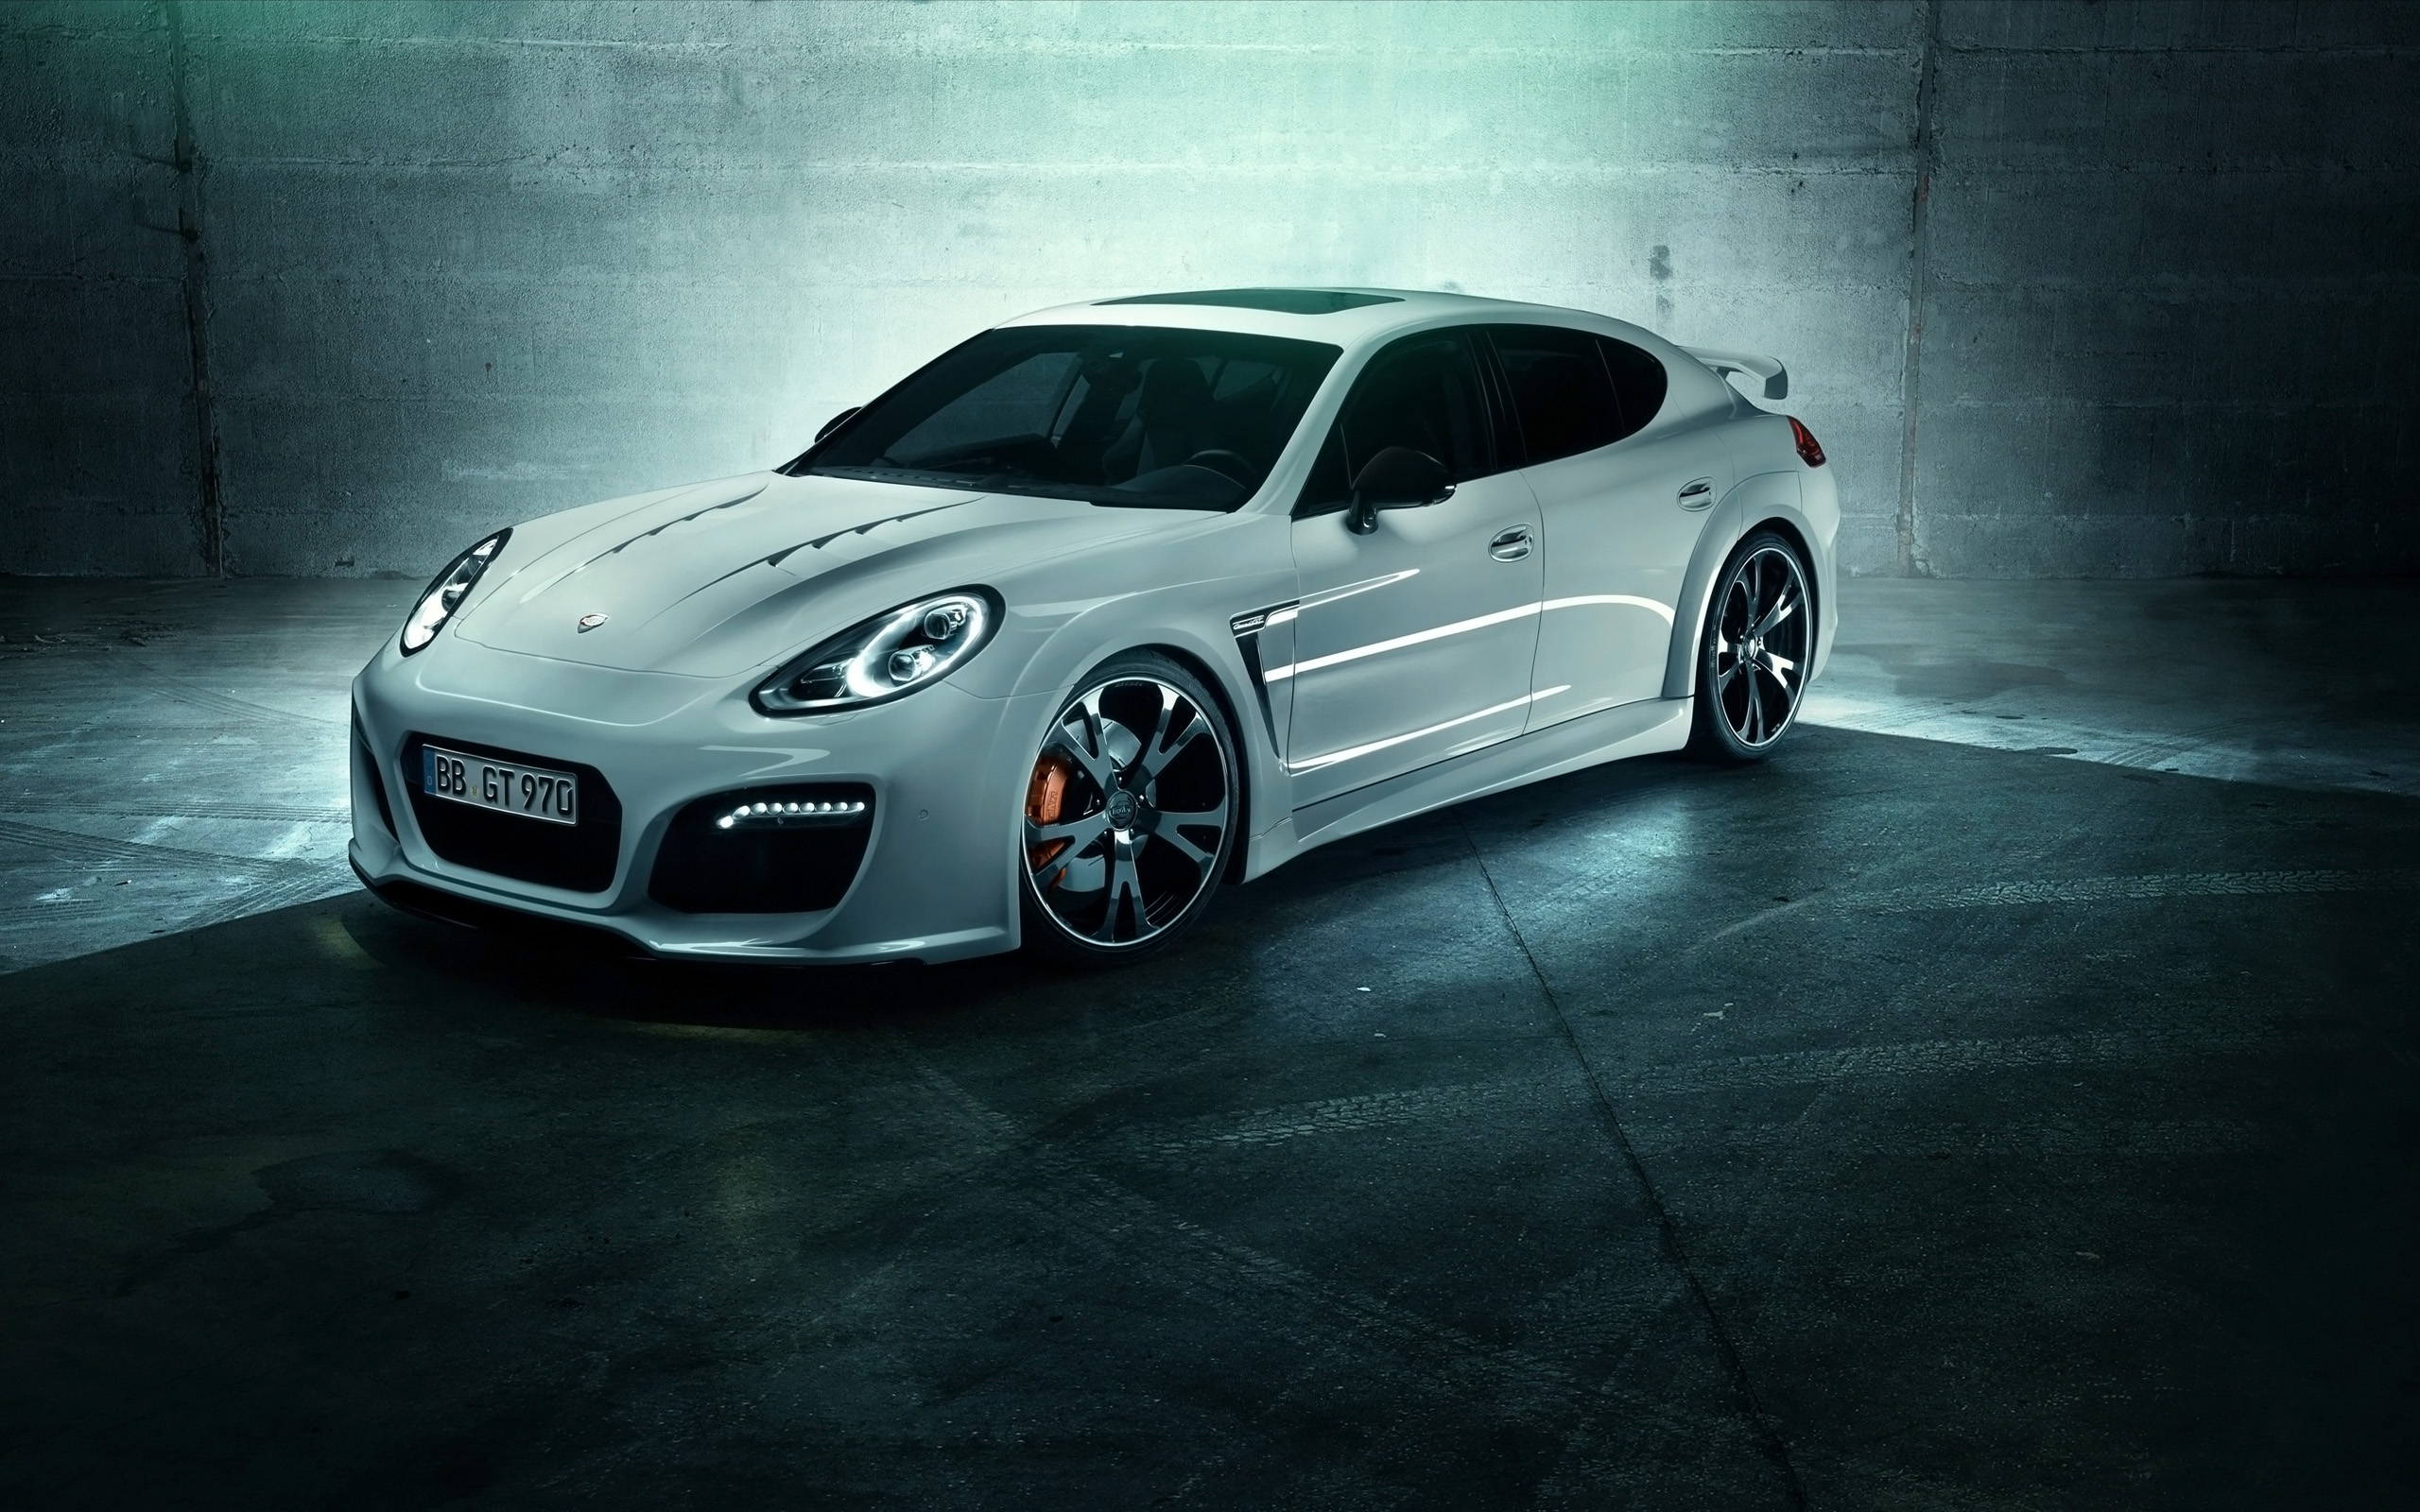 Porsche Panamera Turbo GrandGT HD Wallpaper Background Image 2560x1600